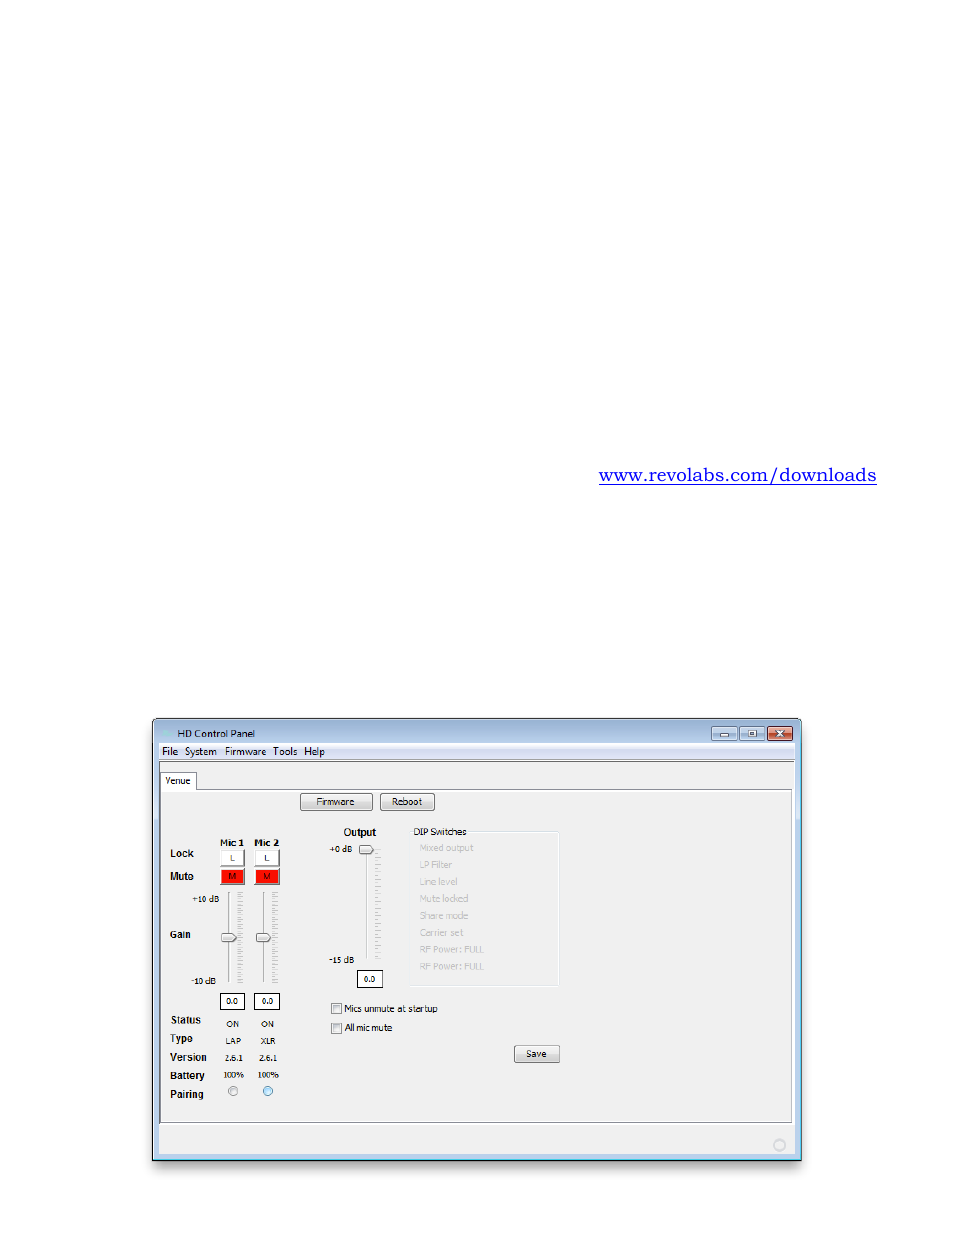 Using the revolabs hd control panel software, Configuration